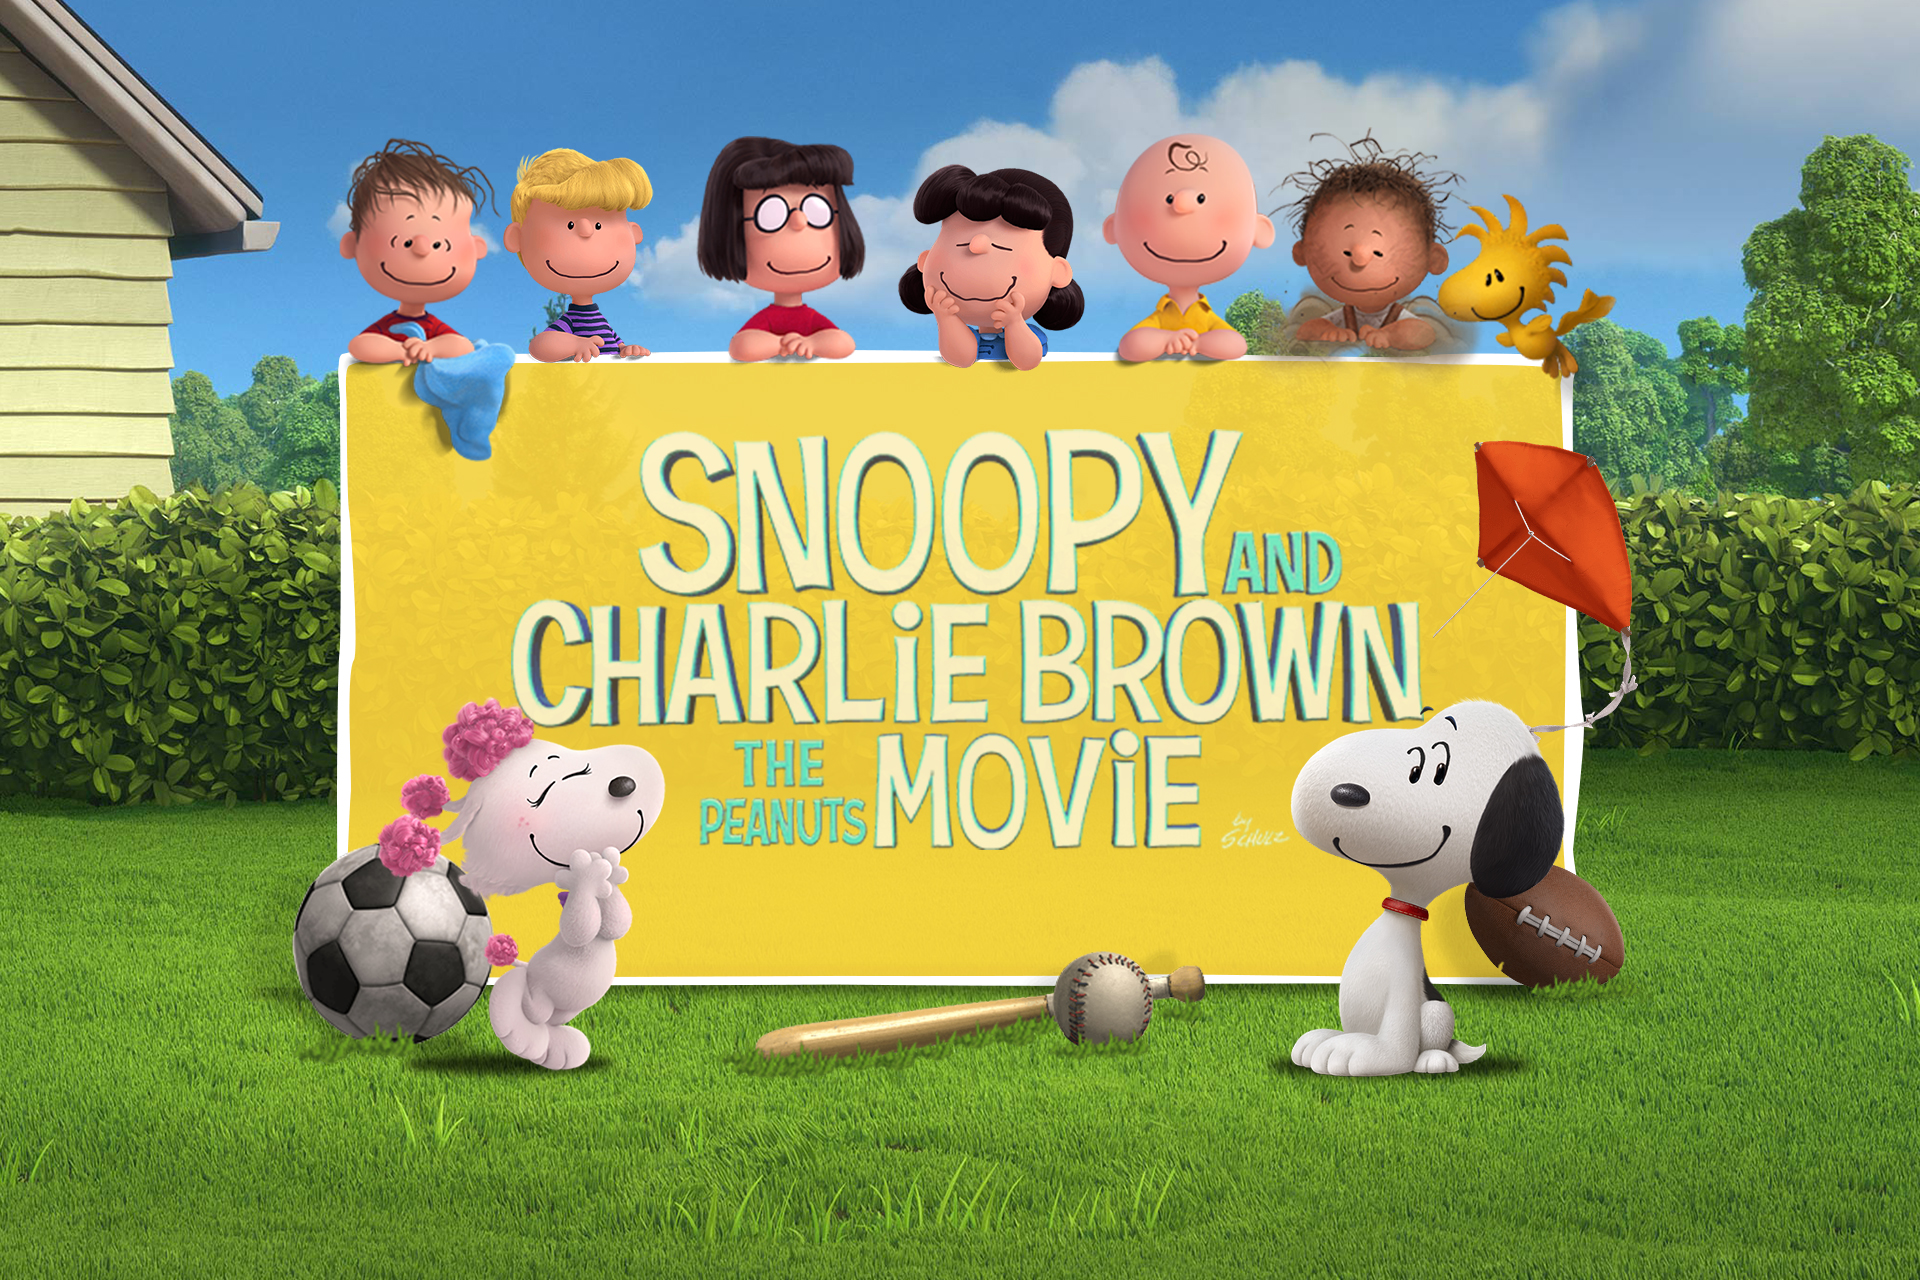 the peanuts movie (2015): hd wallpapers | volganga